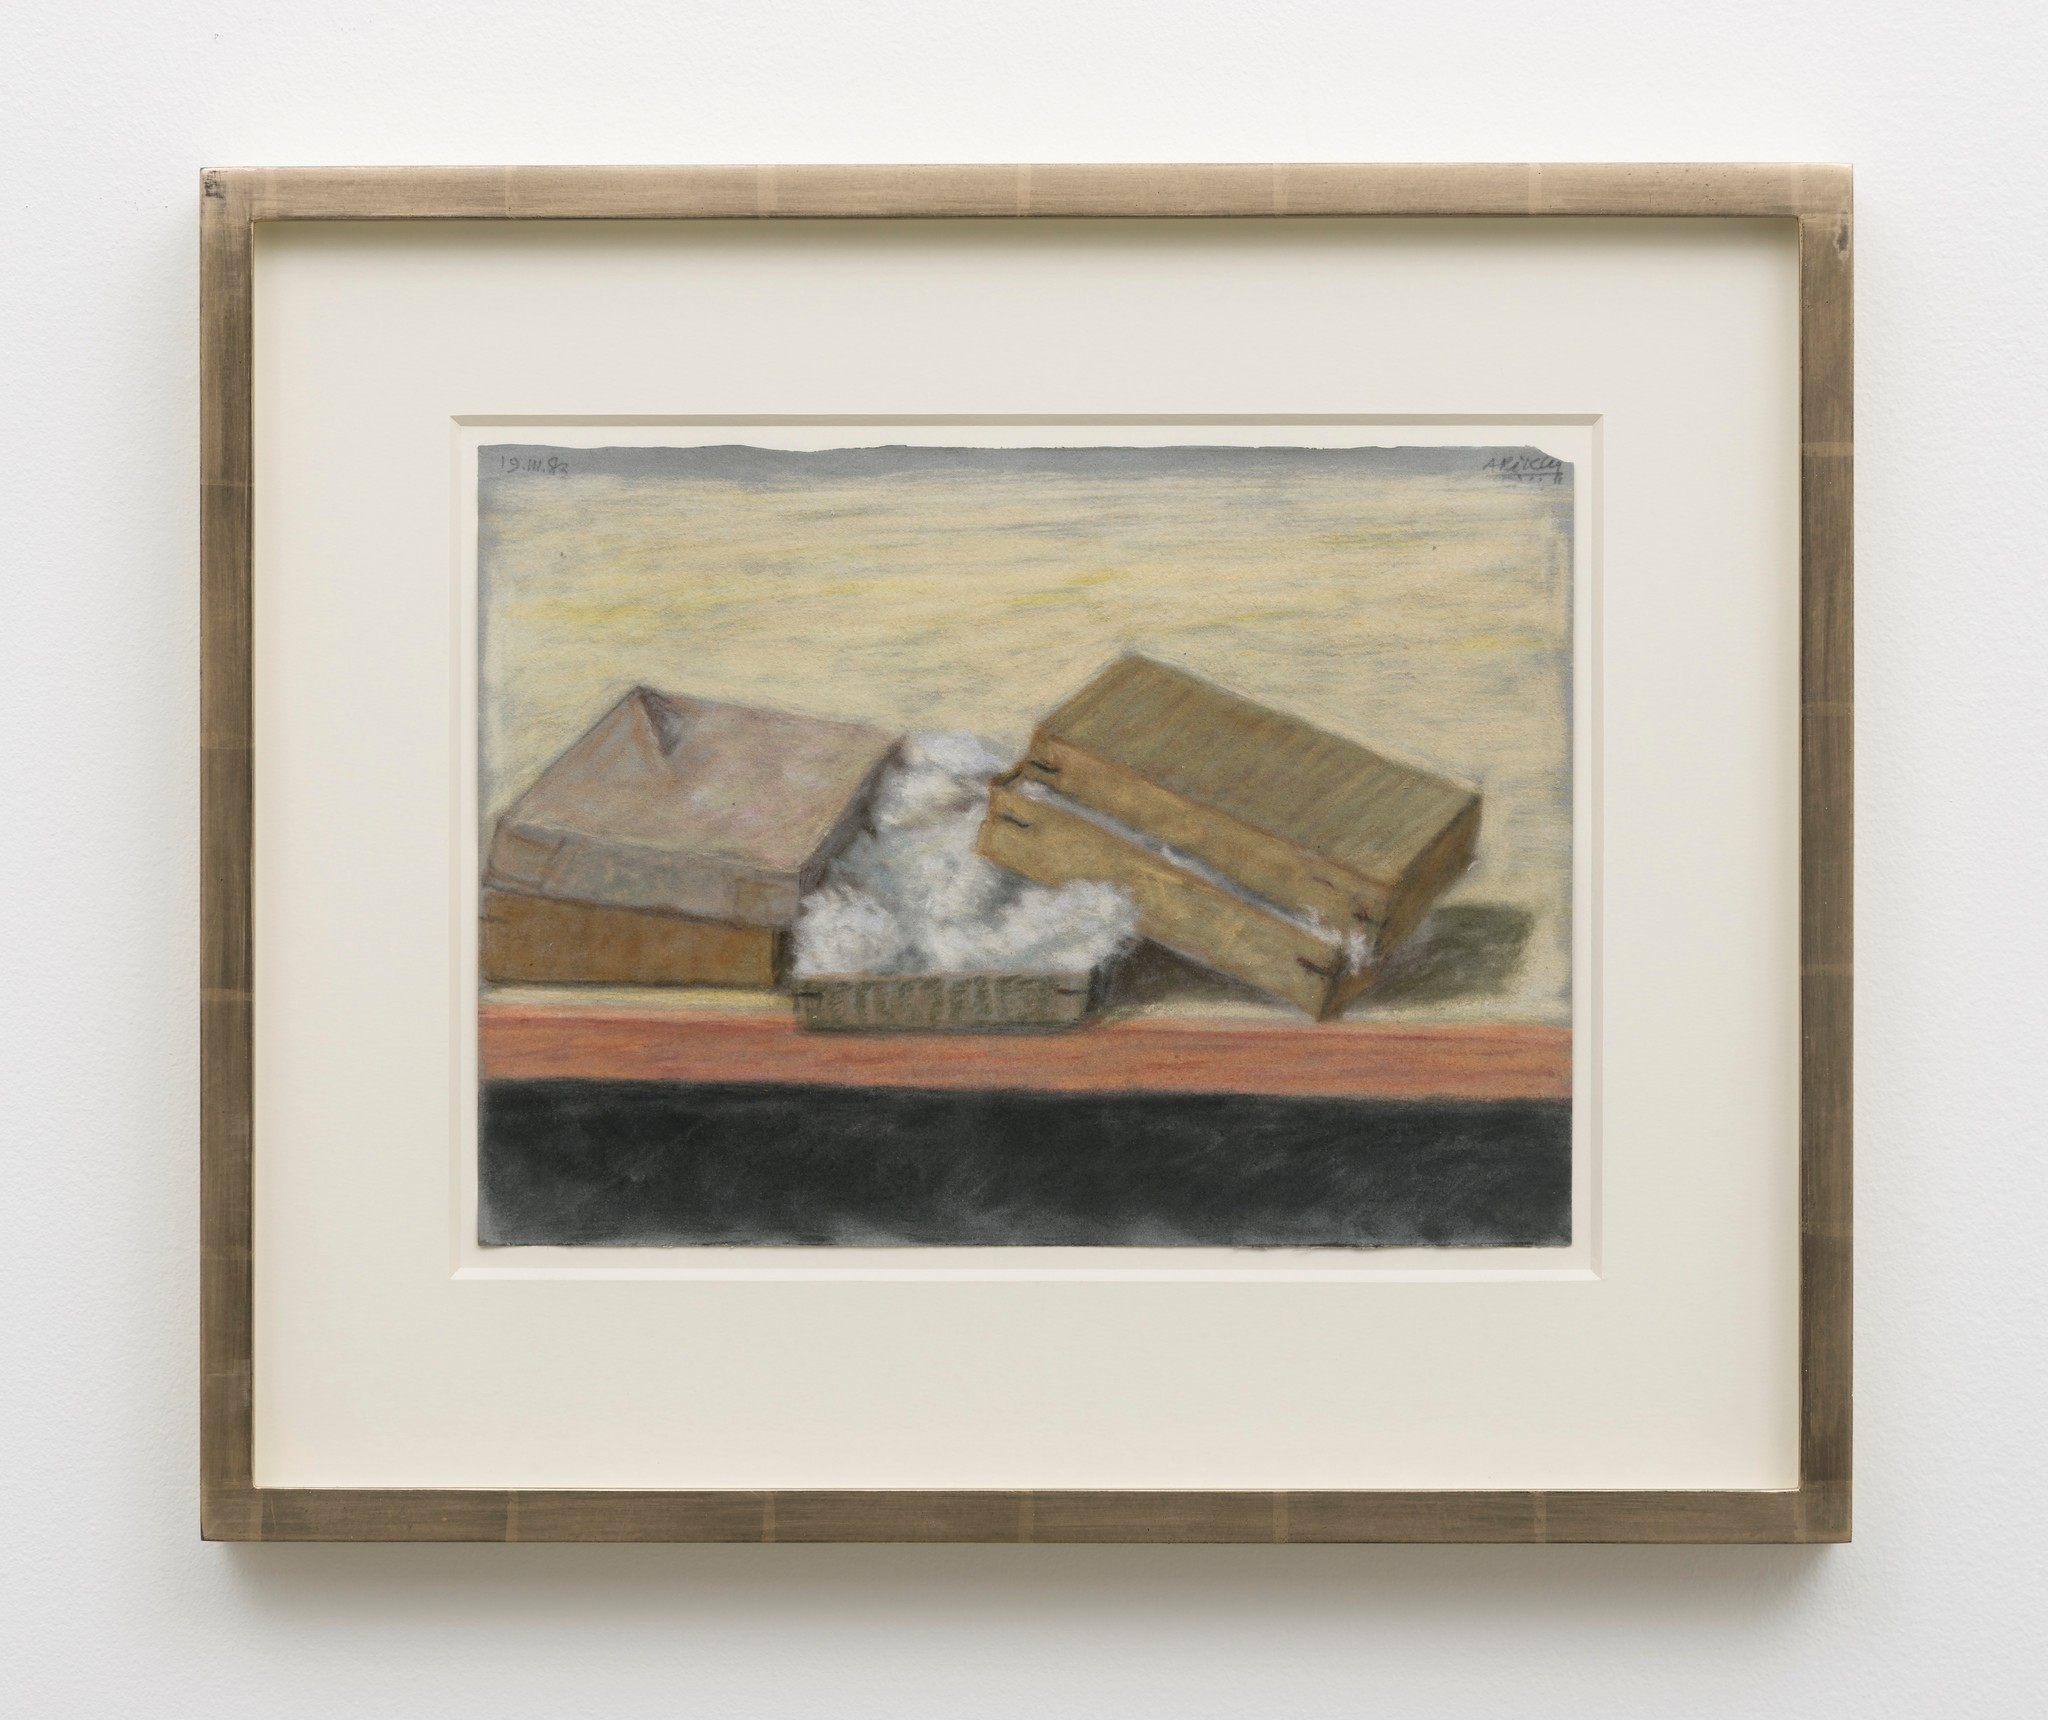 """Avigdor Arikha's """" Pastel Boxes,"""" 1983, pastel on paper, 9.5 inches by 12.5 inches."""